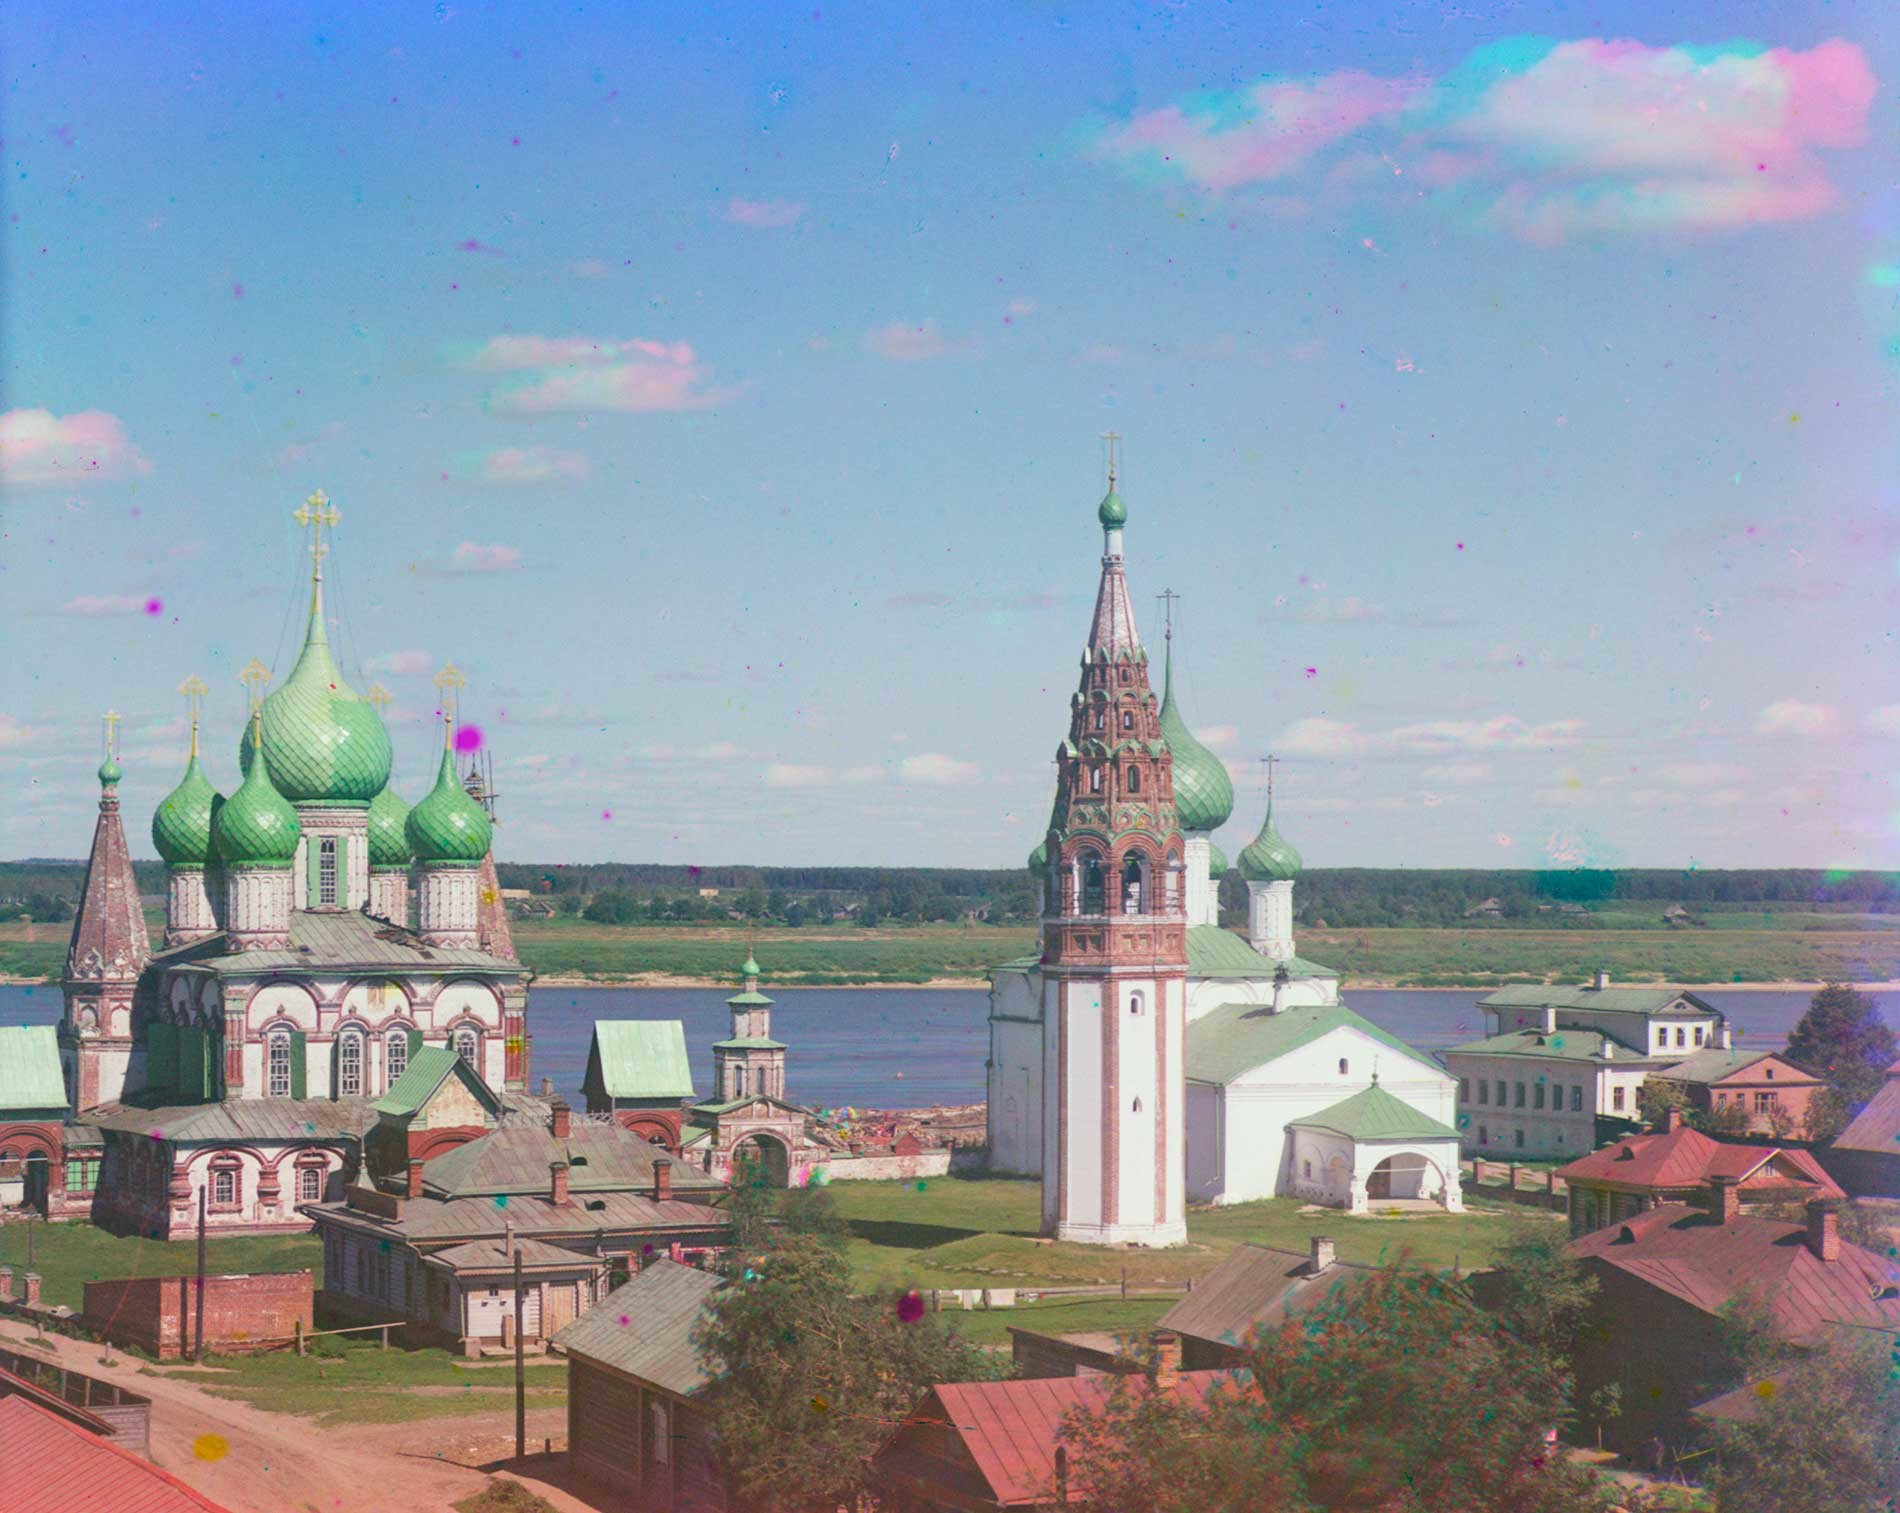 Korovniki ensemble: Church of St. John Chrysostome (left), Holy Gate, bell tower, Church of the Vladimir Icon. Northwest view. Background: Volga River. Mottled appearance of clouds caused by motion during three exposure color process. Summer 1911.